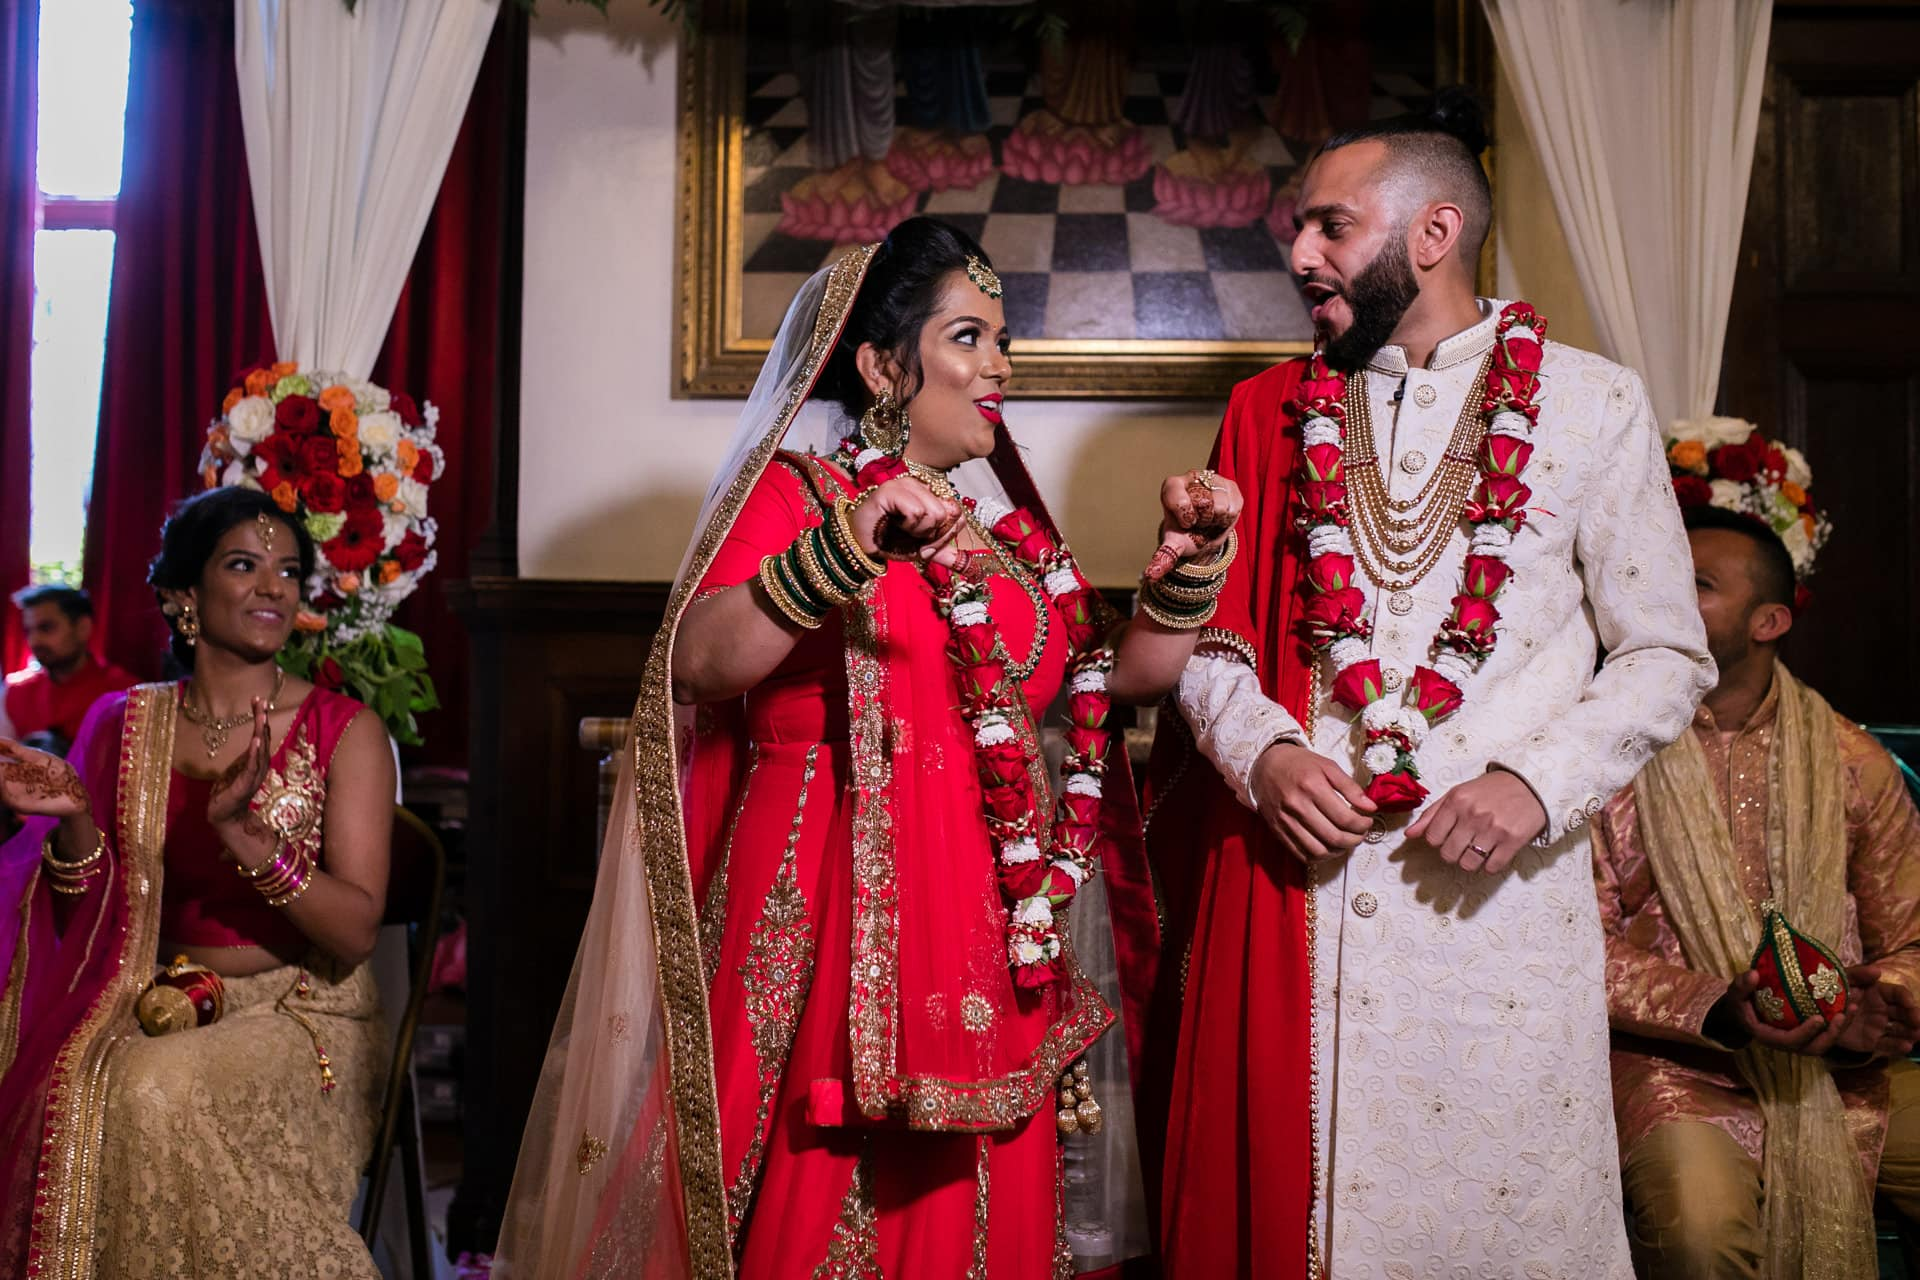 Hindu bride and groom